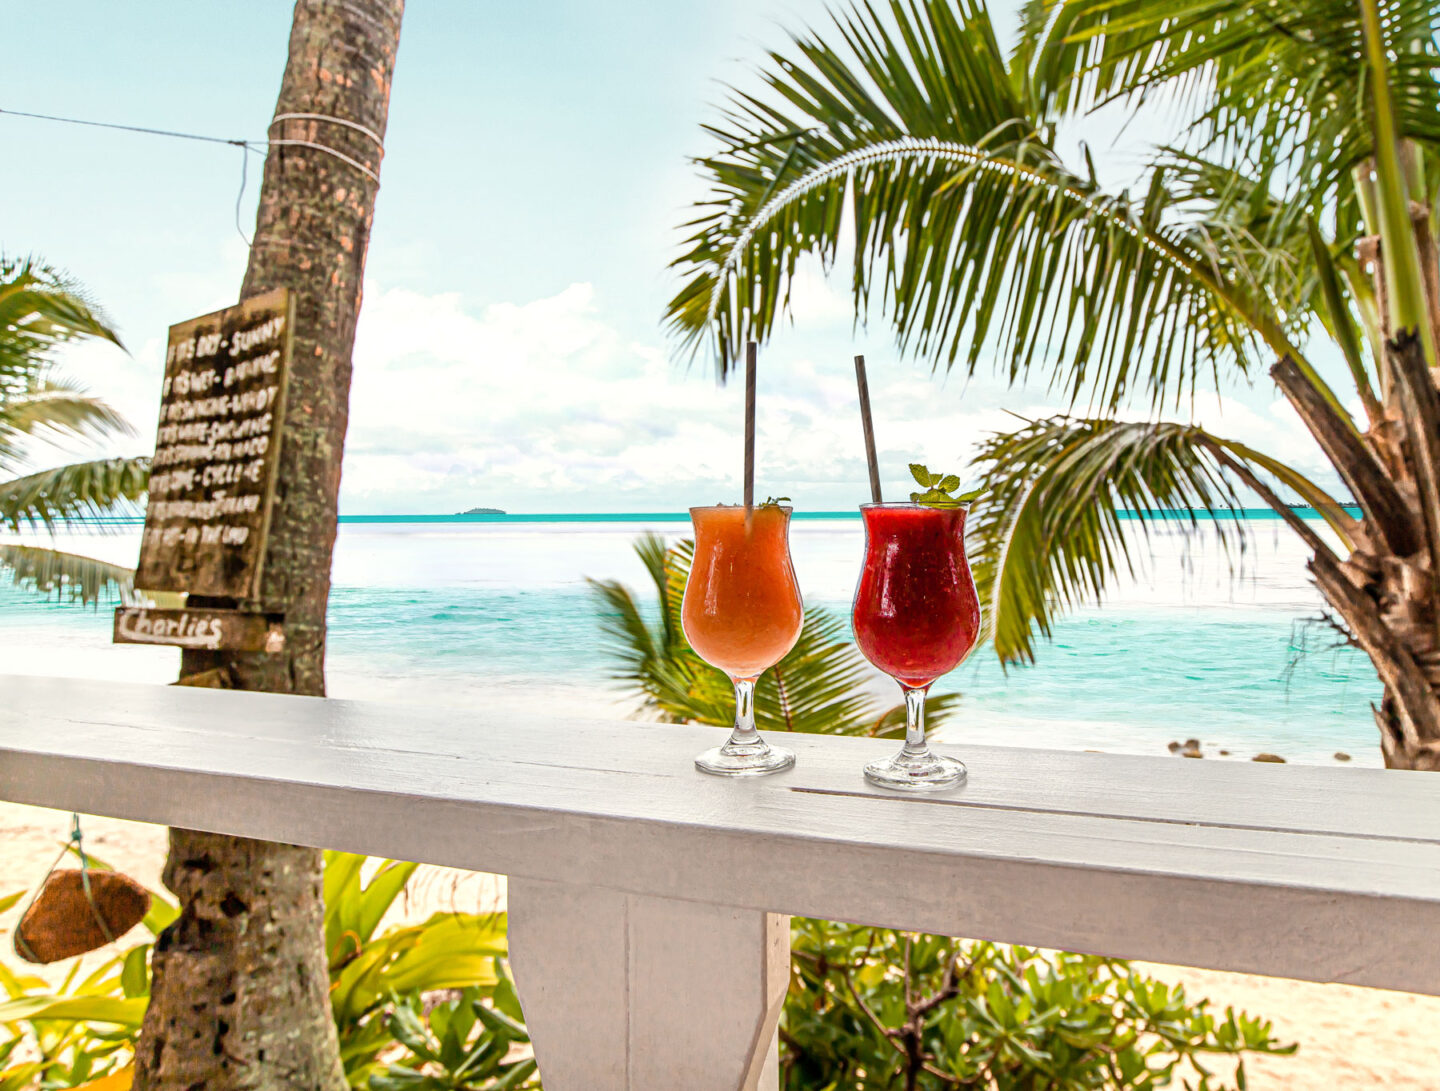 Charlie's Beach Bar Cook-Islands-Travel-Guide-–-Rarotonga-–-Aitutaki-–-Kelsey-Heinrichs---@kelseyinlondon